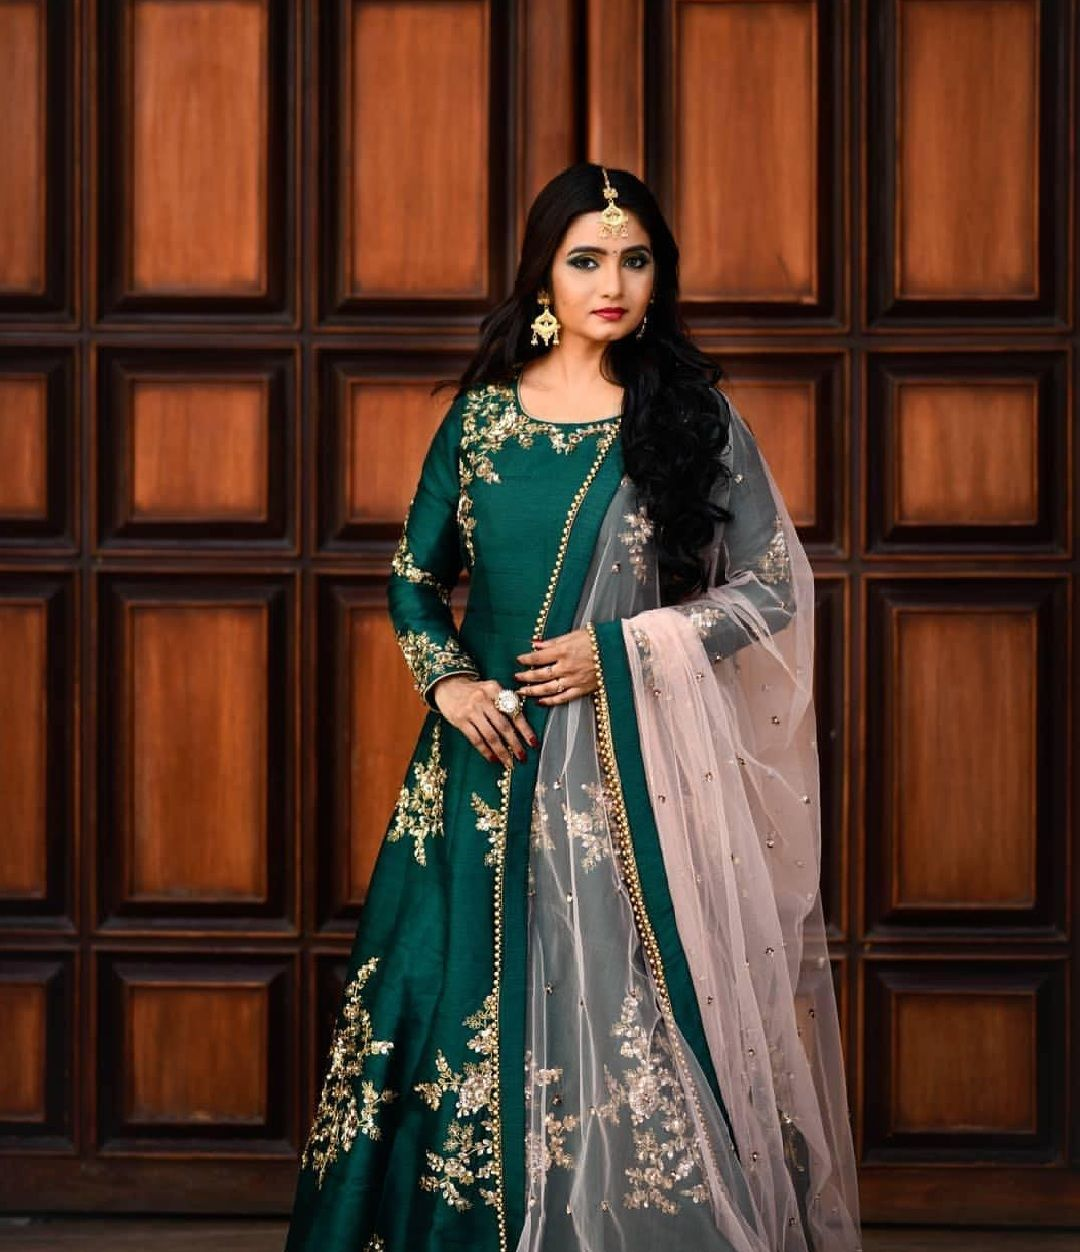 Wedding Gowns For Hourglass Figures: 4 Reception Styles On Actress Srithika Sri You Should